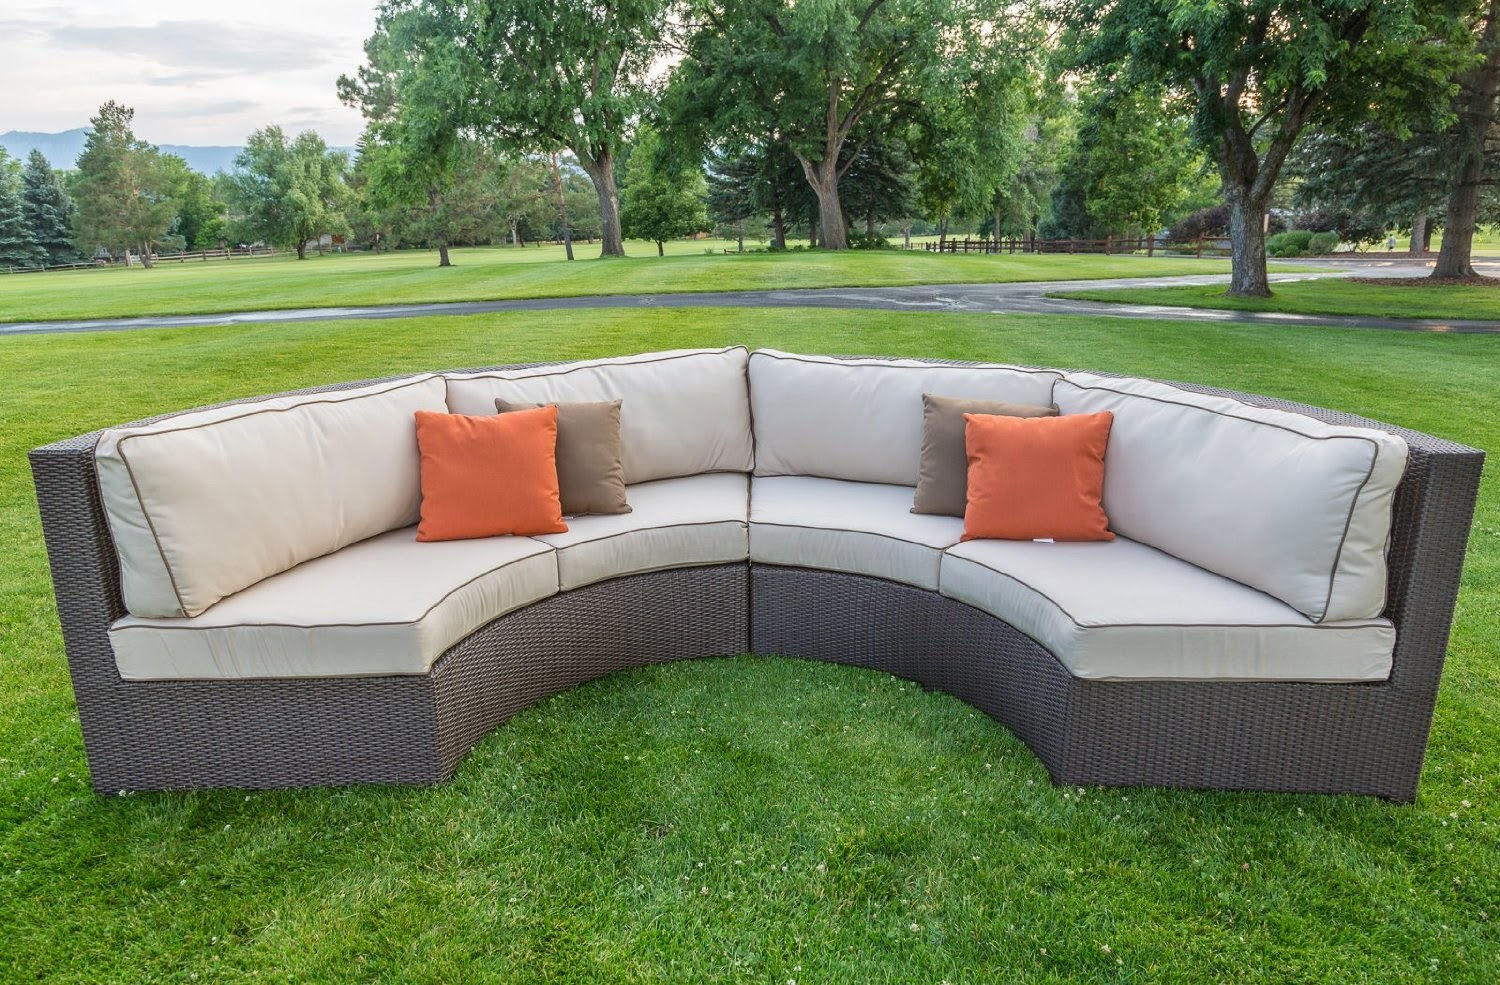 Curved Sofa Couch For Sale: Curved Outdoor Sectional Sofa